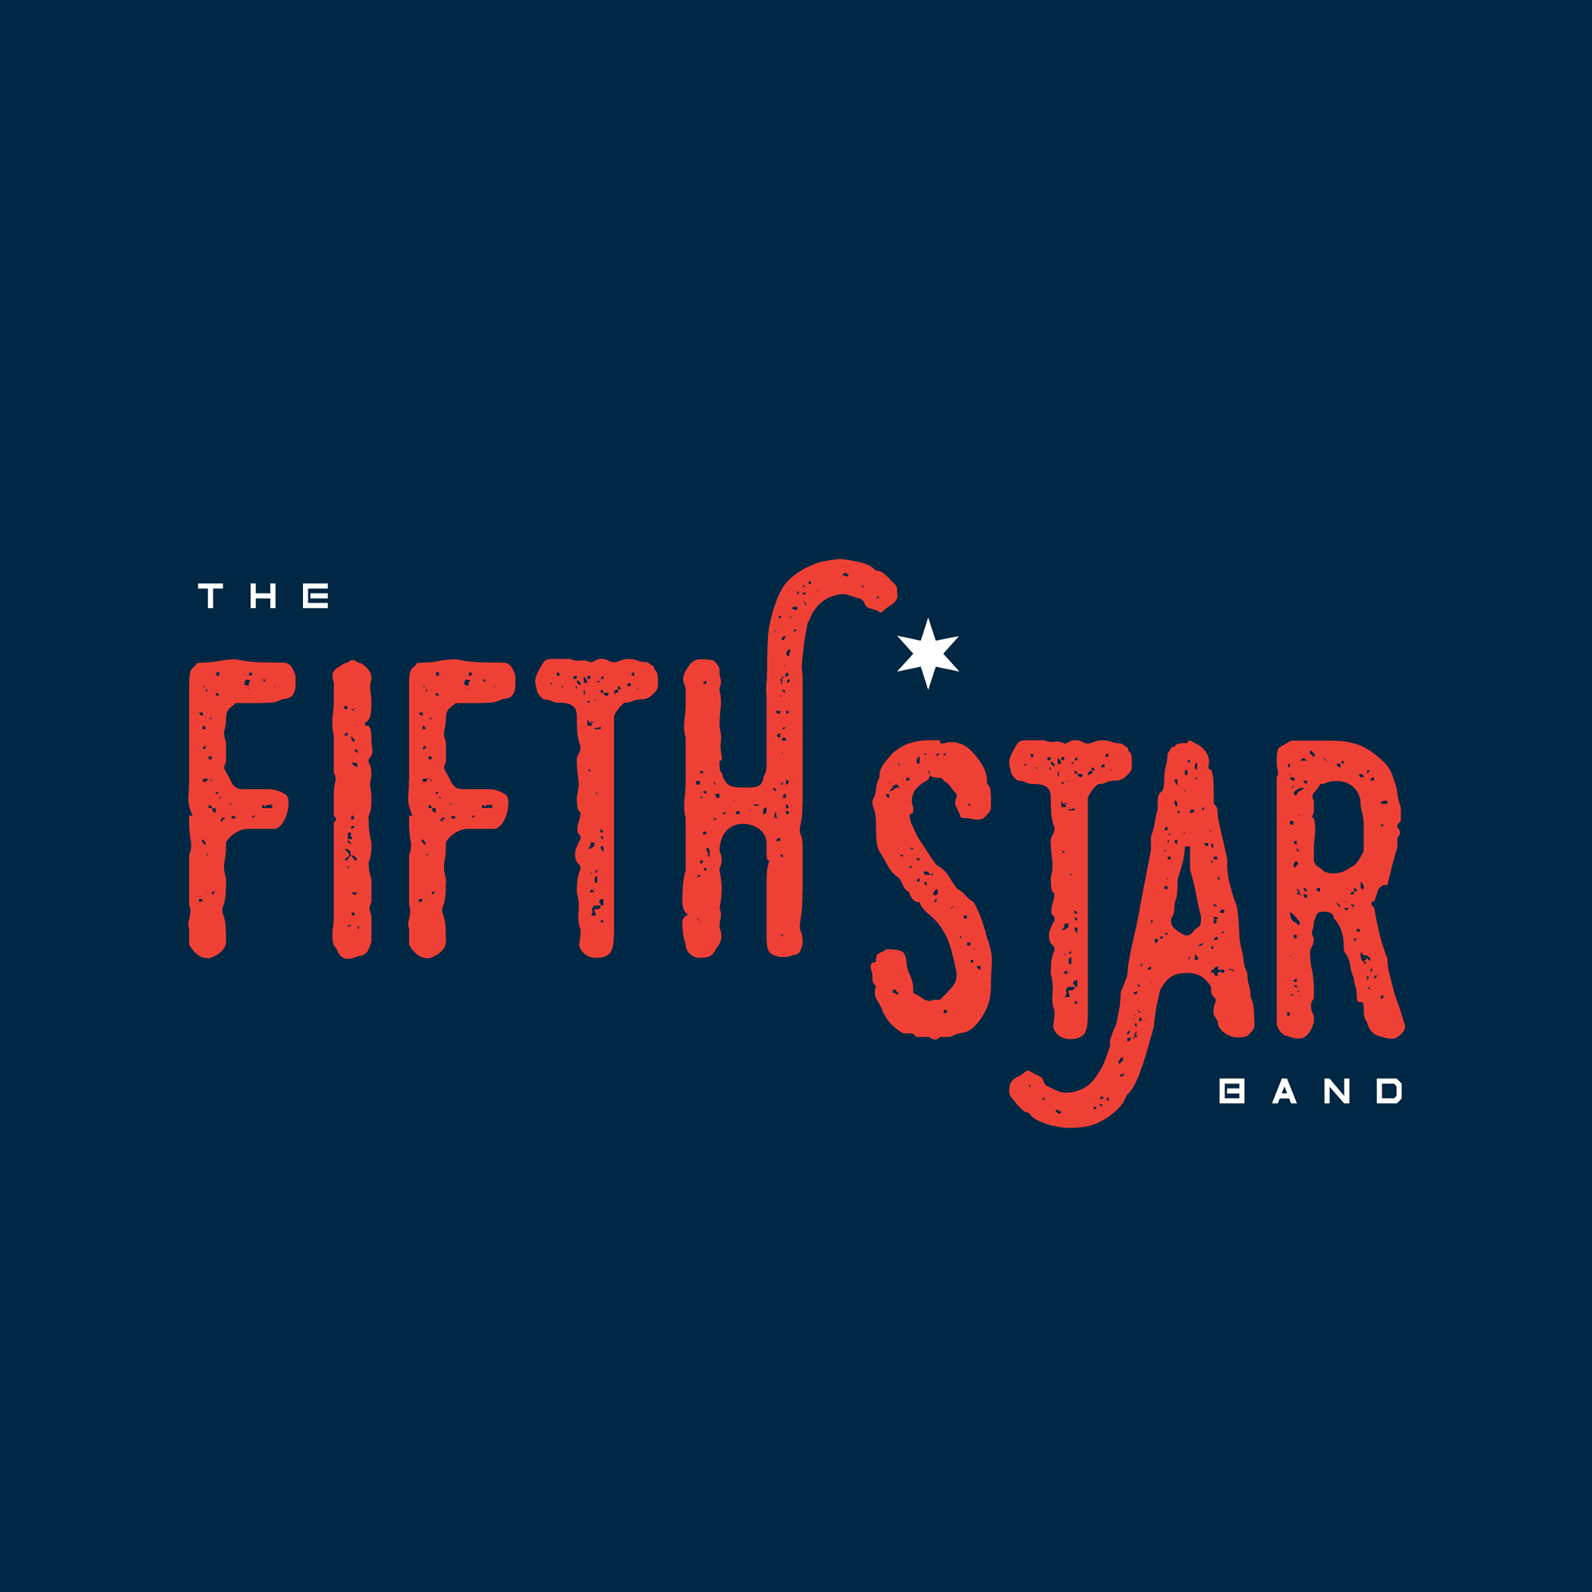 THE FIFTH STAR BAND -American Traditional Rock